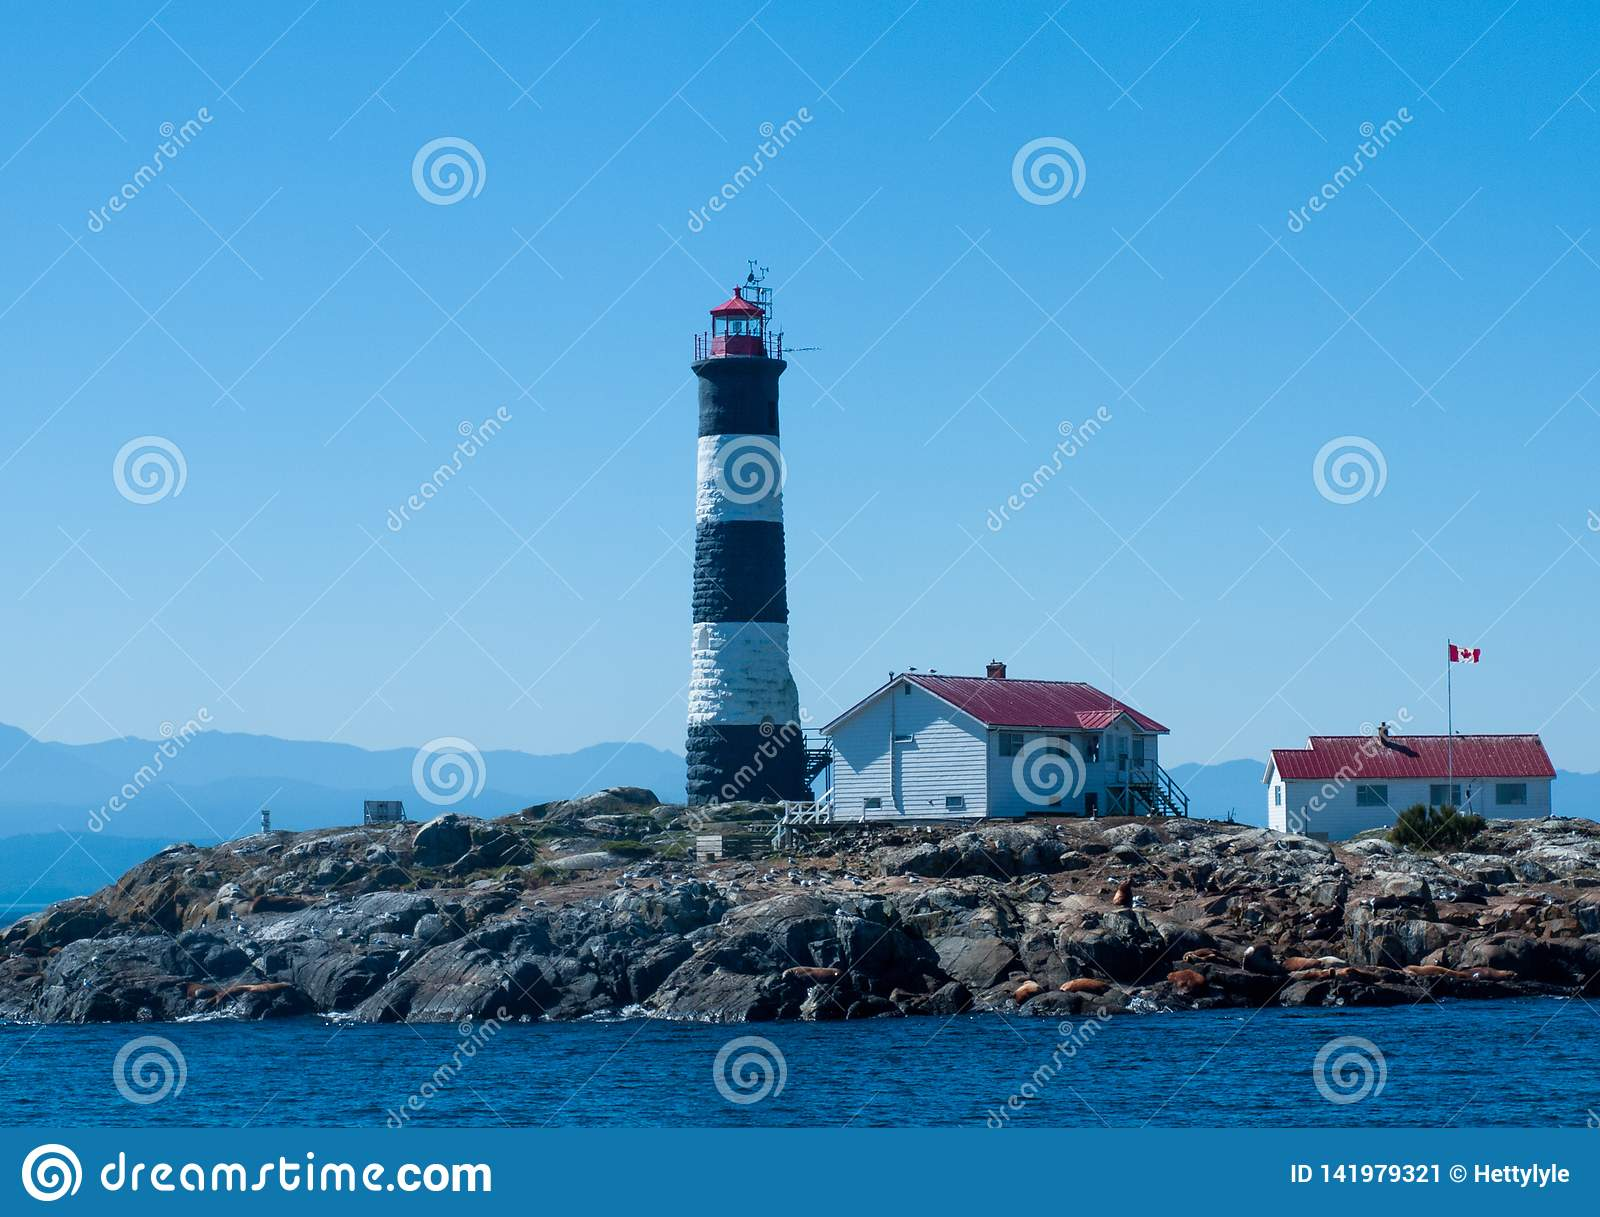 Canada, Vancouver Island, Pacific, lighthouse, sea-lions on rocks, island,